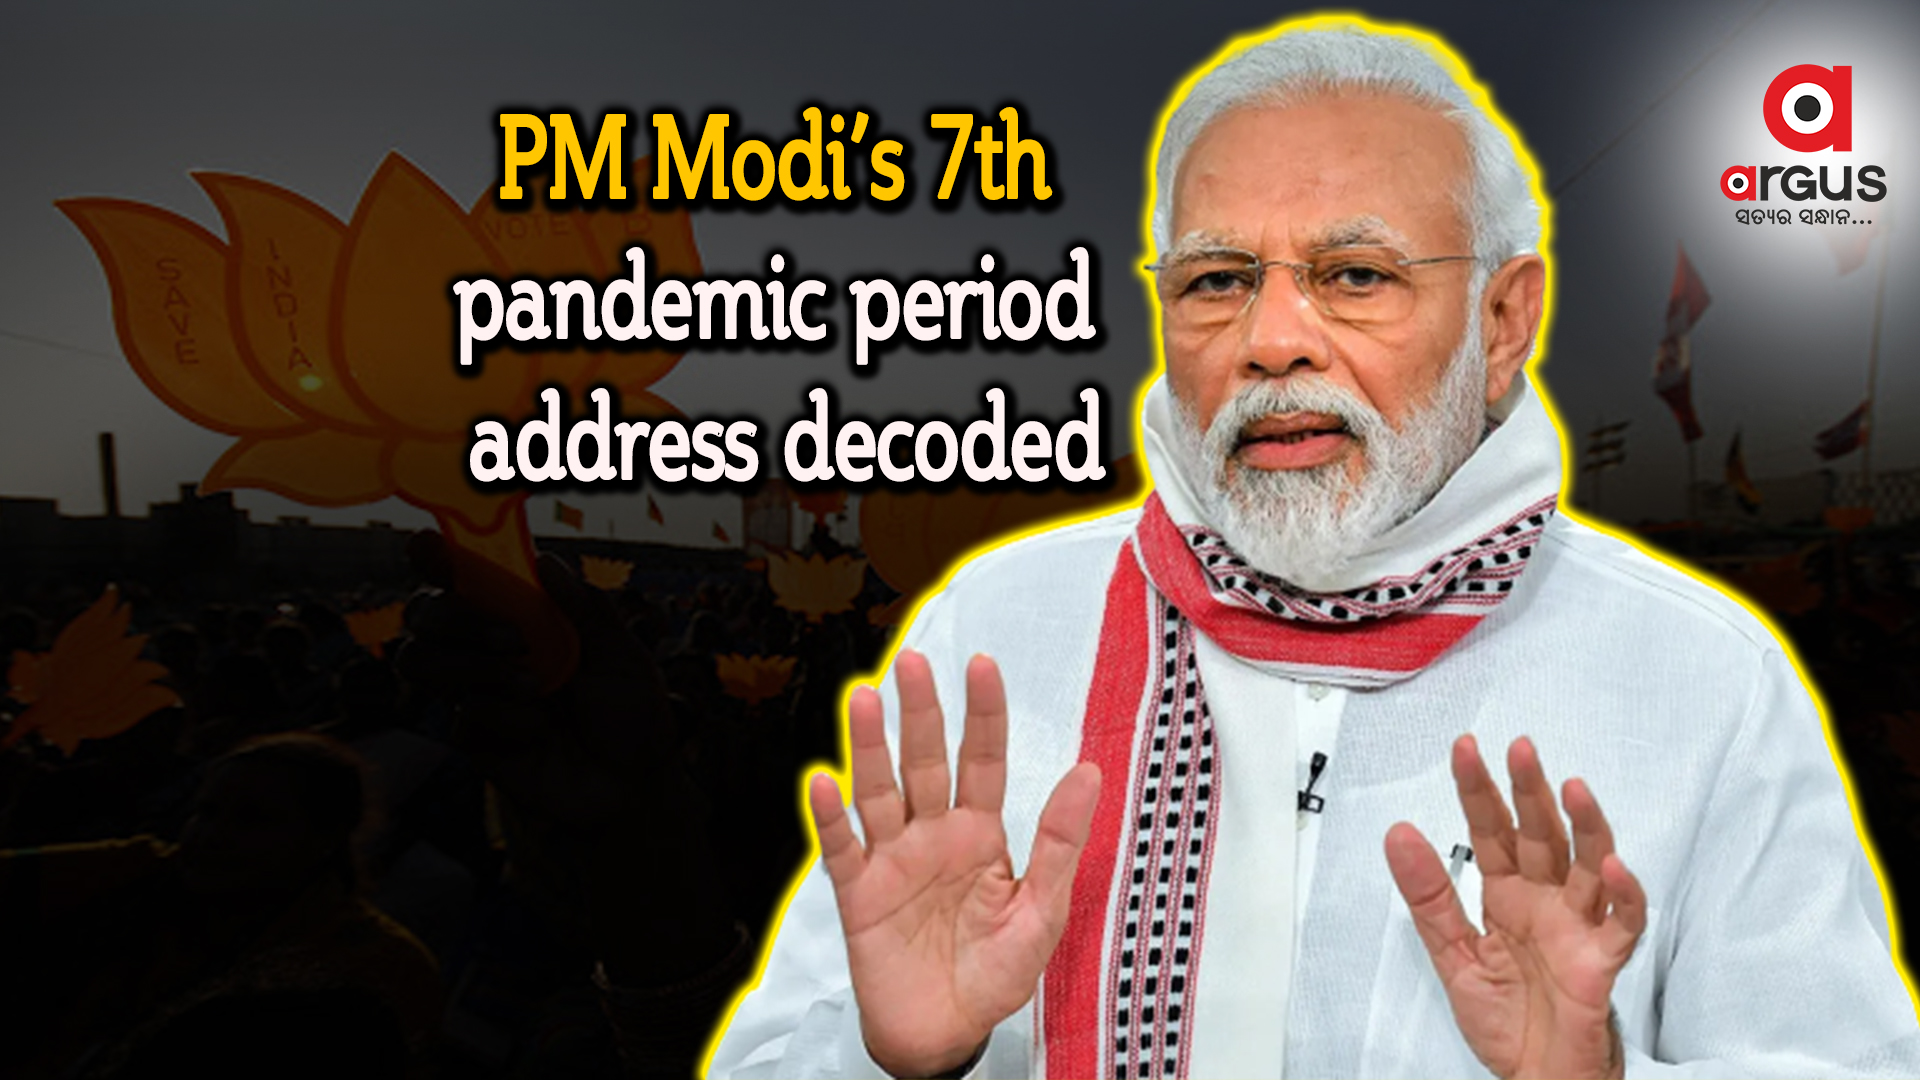 PM Modi's 7th pandemic period address decoded: It's all about instilling optimism in countrymen